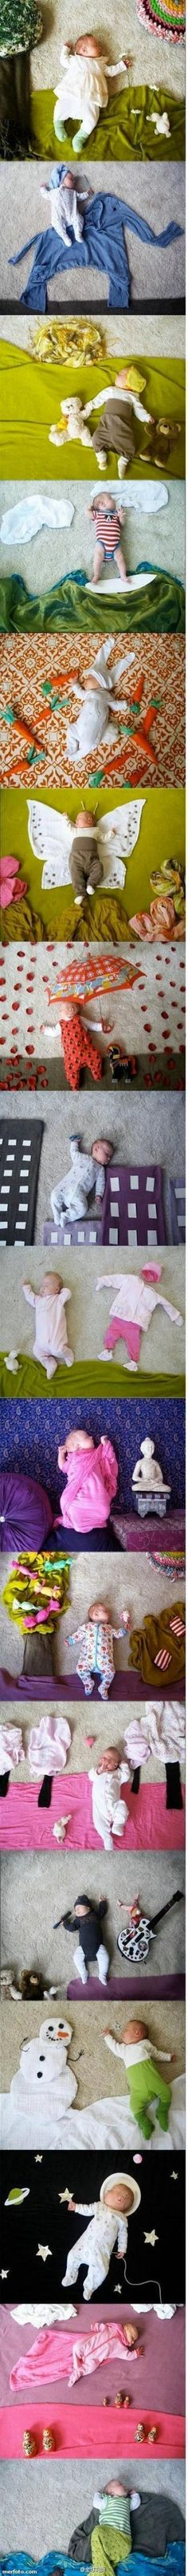 Super Ideas For Baby Sleep Pictures Photo Ideas Sleep Pictures, Funny Pictures For Kids, Boy Pictures, Funny Photos, Funny Baby Photography, Children Photography, Photography Ideas, Funny Babies, Funny Kids